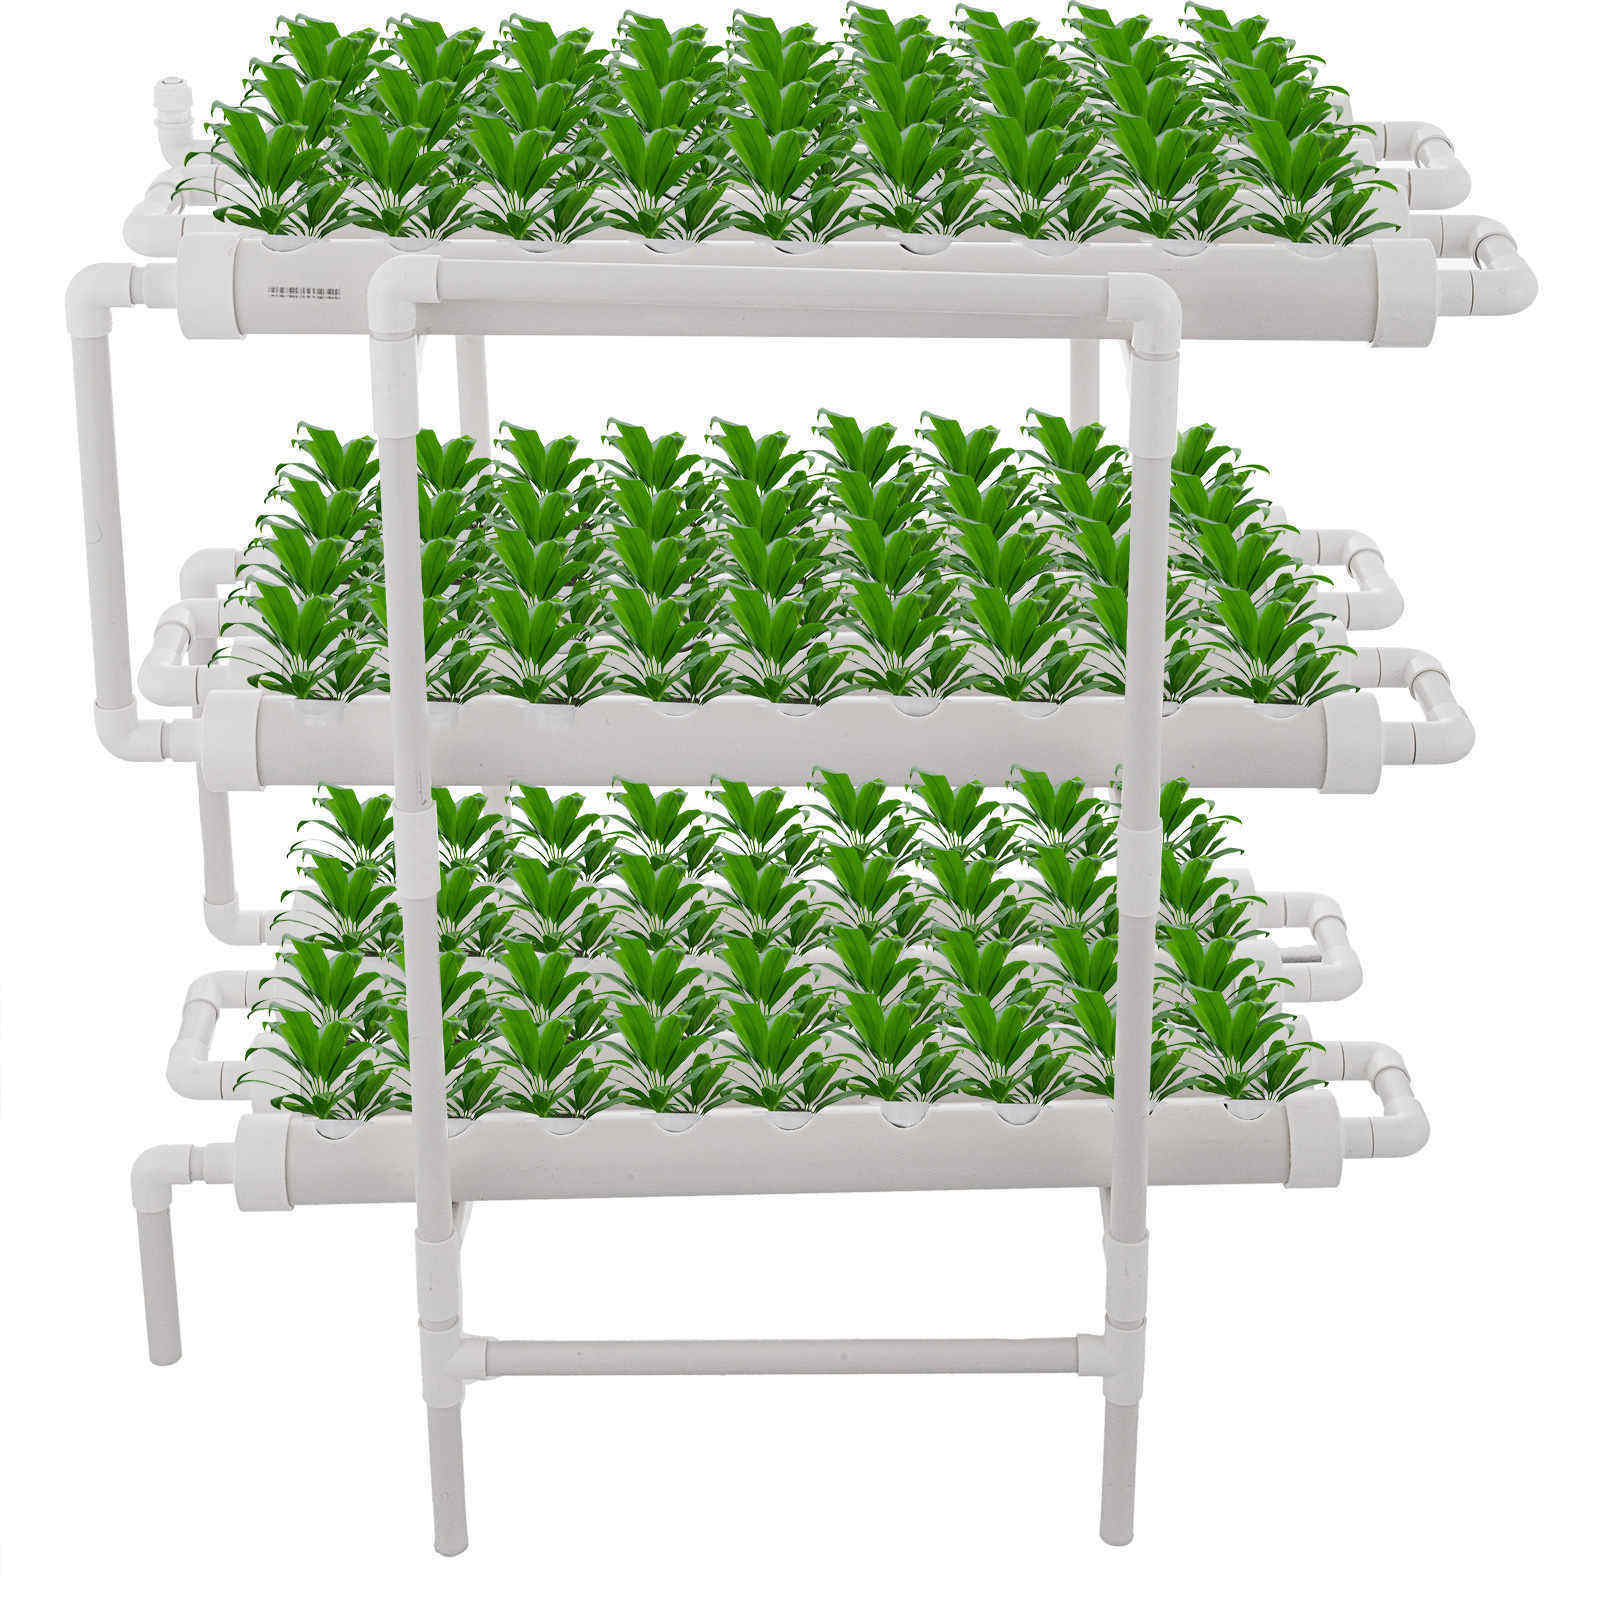 Hydroponic Grow Kit 12 Pipes 3 Layers 108 Plant Sites Food Grade System Melons